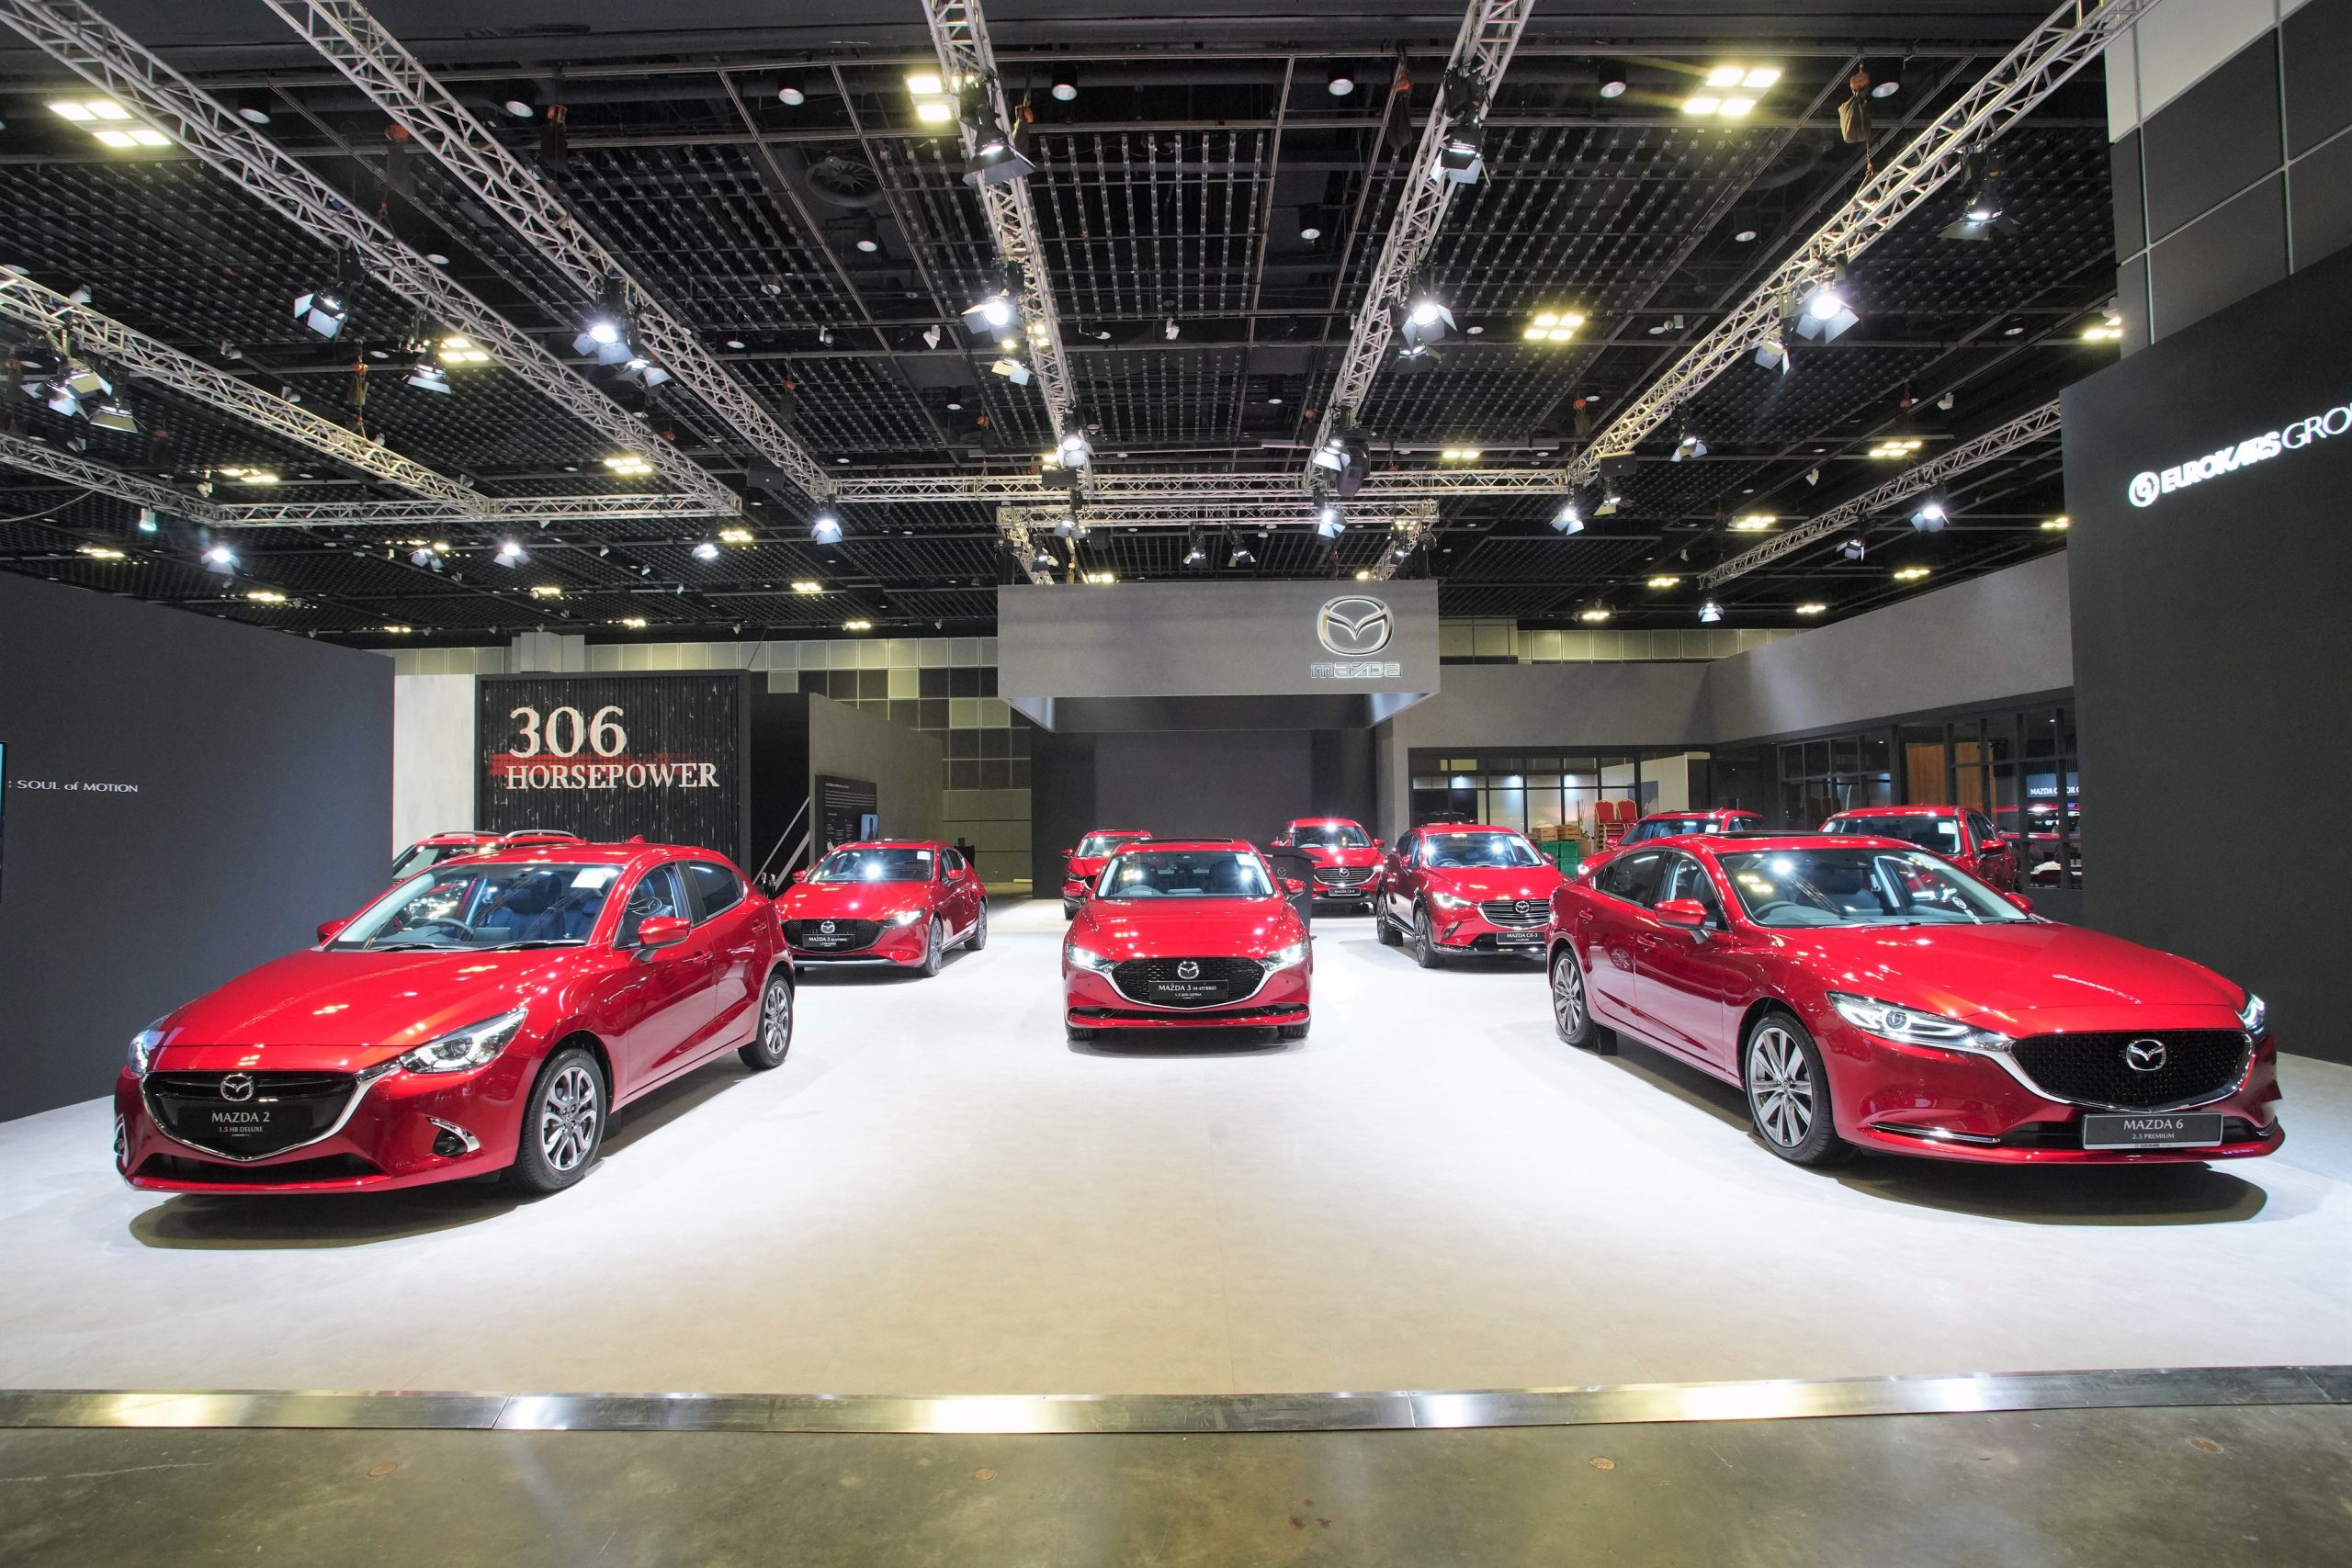 The Mazda line-up at the Singapore Motorshow 2020, which includes the all-new Mazda CX-30 and Mazda CX-8